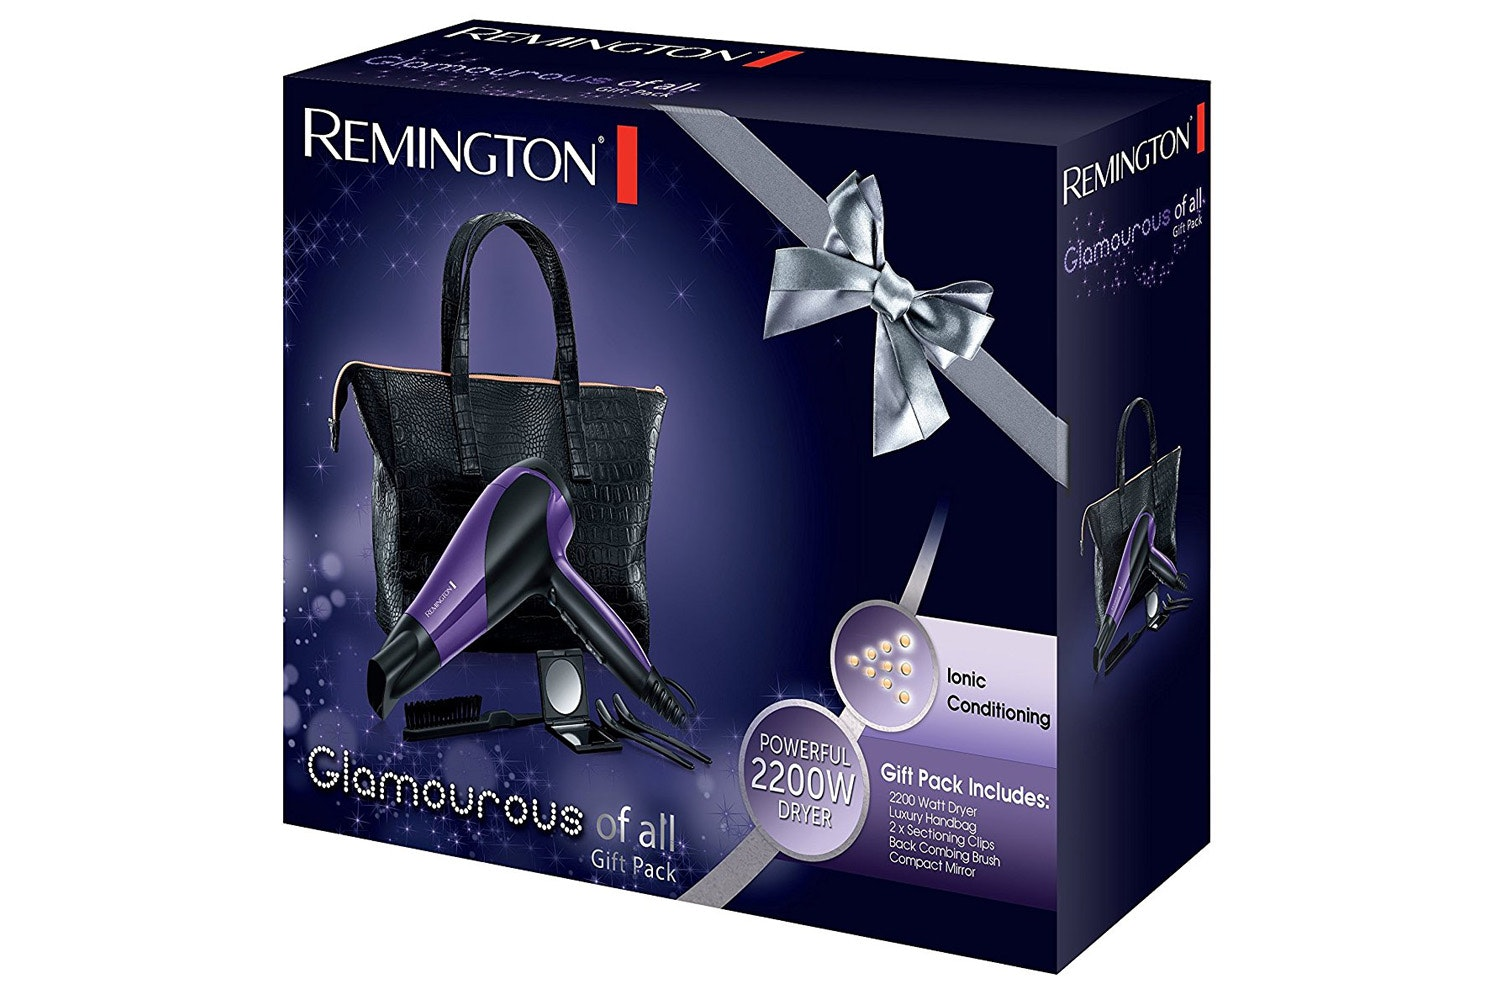 Remington Glamorous 2200W Hair Dryer Gift Set | D3192GP